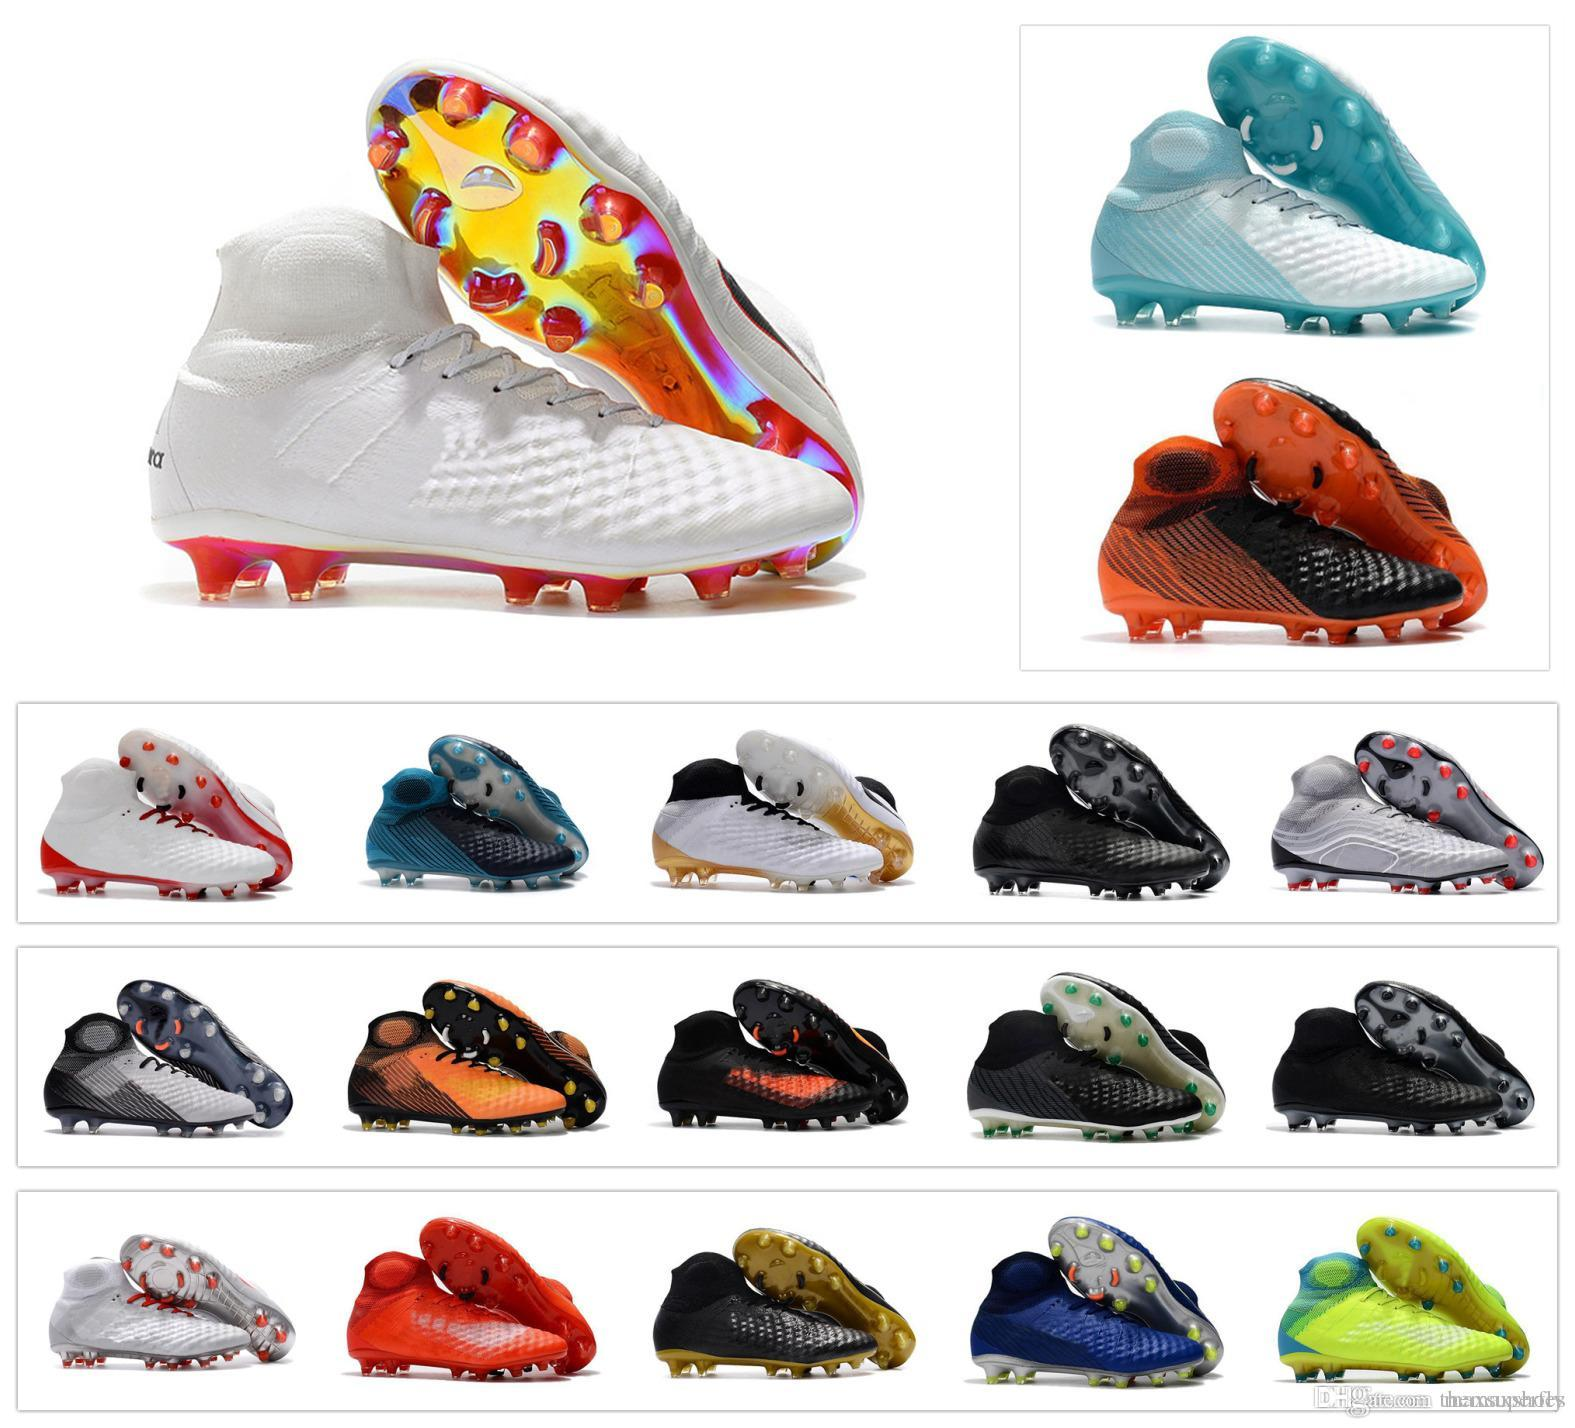 abc192ca8e9 2019 2018 Magista Obra 2 Elite II DF FG ACC 3D Waterproof Mens High Ankle Soccer  Shoes Football De Bruyne Boots Cheap Cleats Size US 6.5 11 From Maxsuperfly  ...